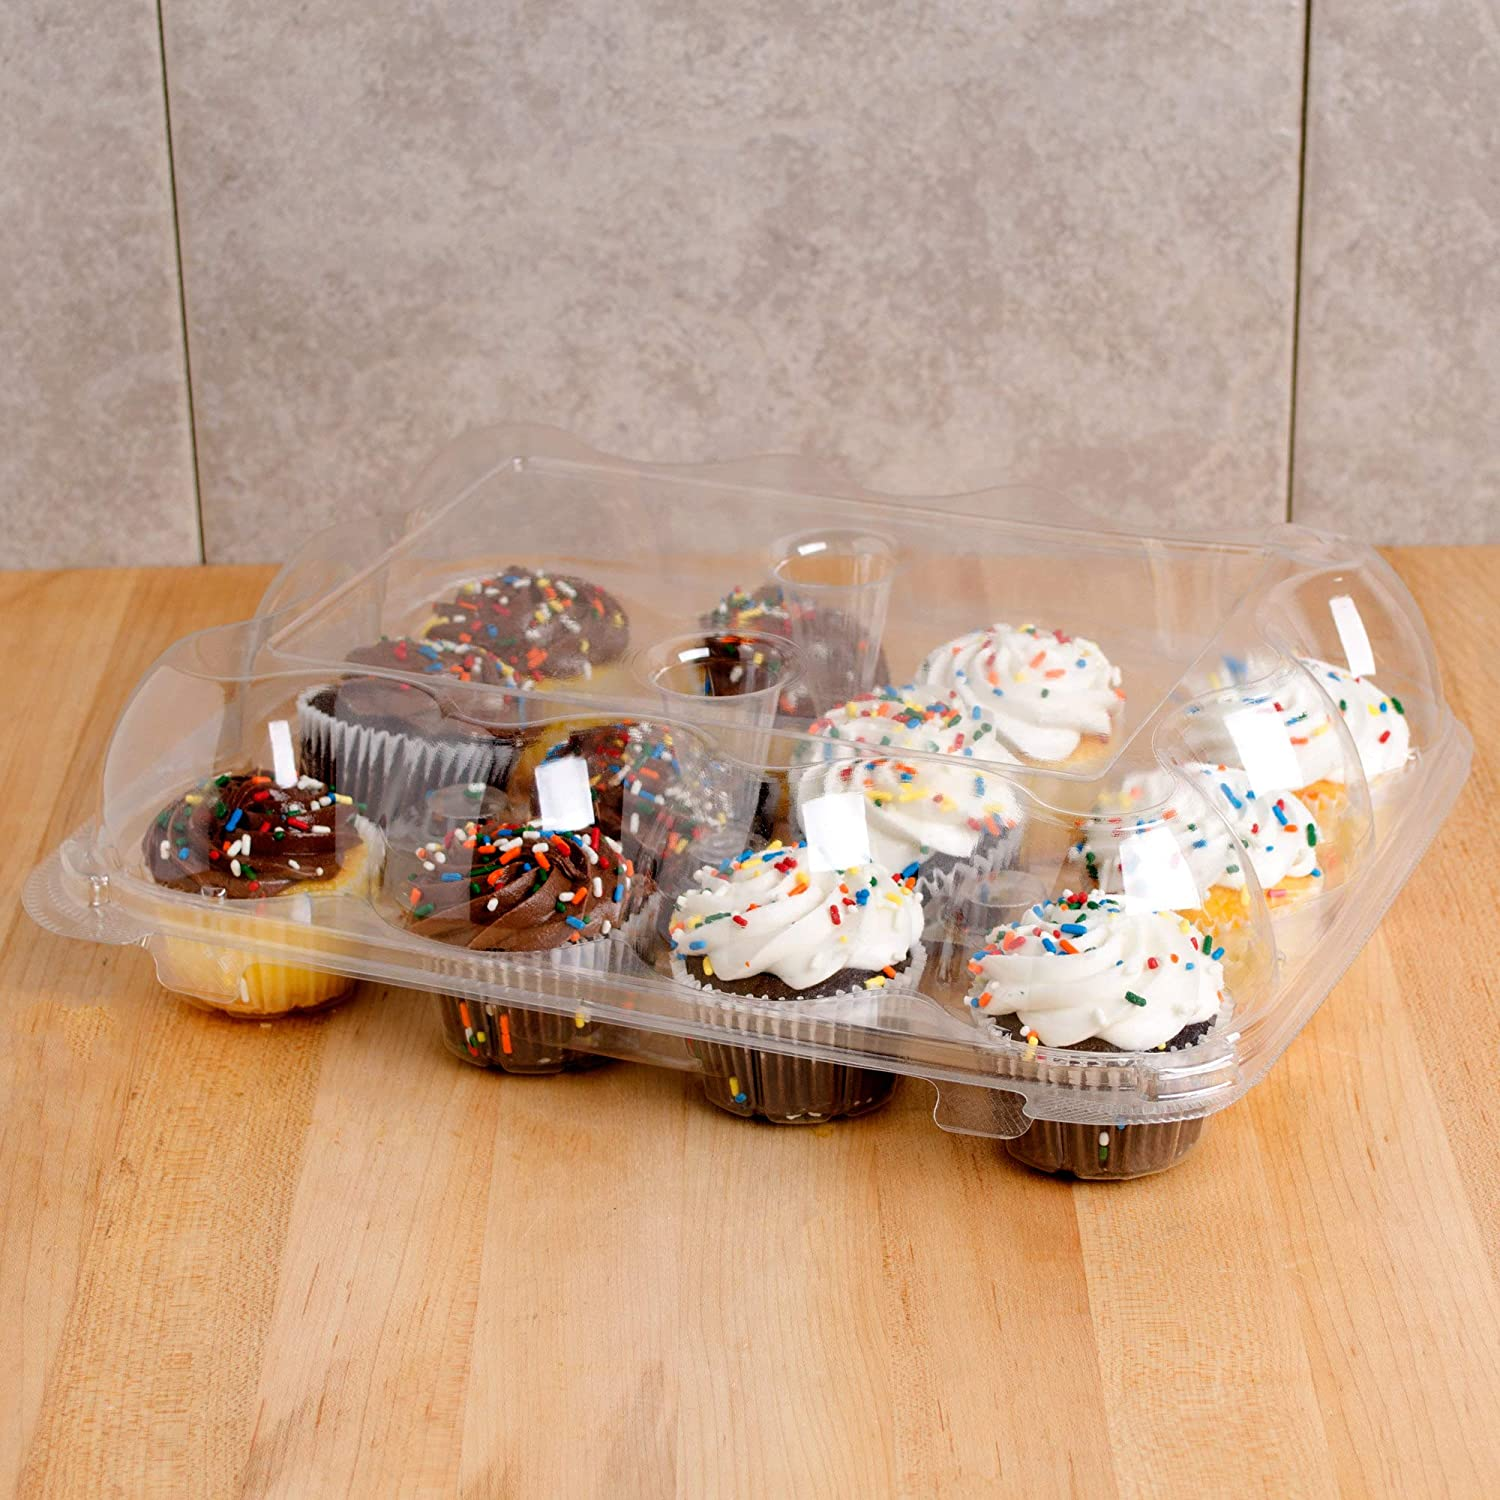 Cupcake Containers Plastic Disposable | 3 High Dome Cupcake Boxes 12 Compartment Cupcake Holders Disposable Cupcake Carrier | Dozen Cupcake Trays | Durable Cup Cake Muffin Packaging Transporter